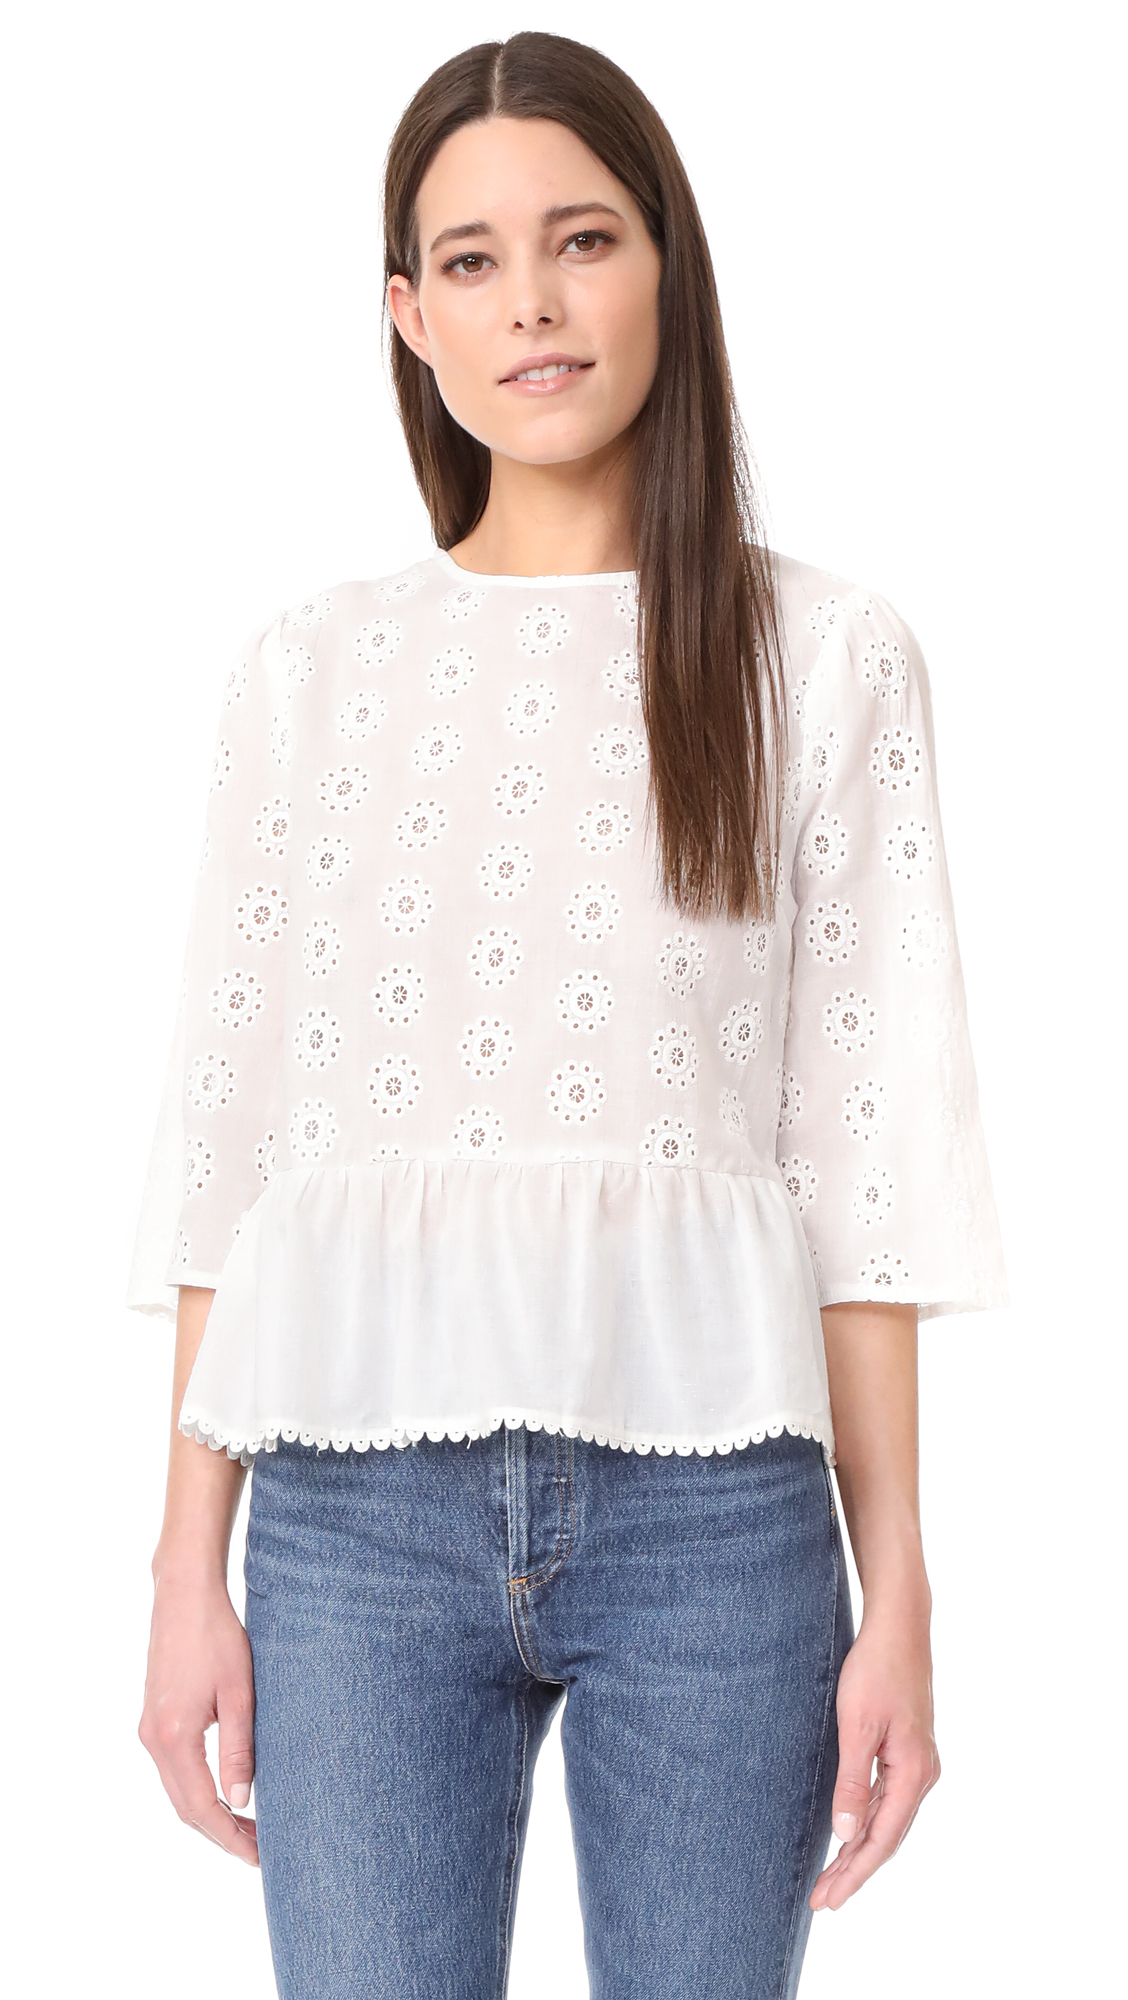 ENGLISH FACTORY Bell Sleeve Eyelet Top - White